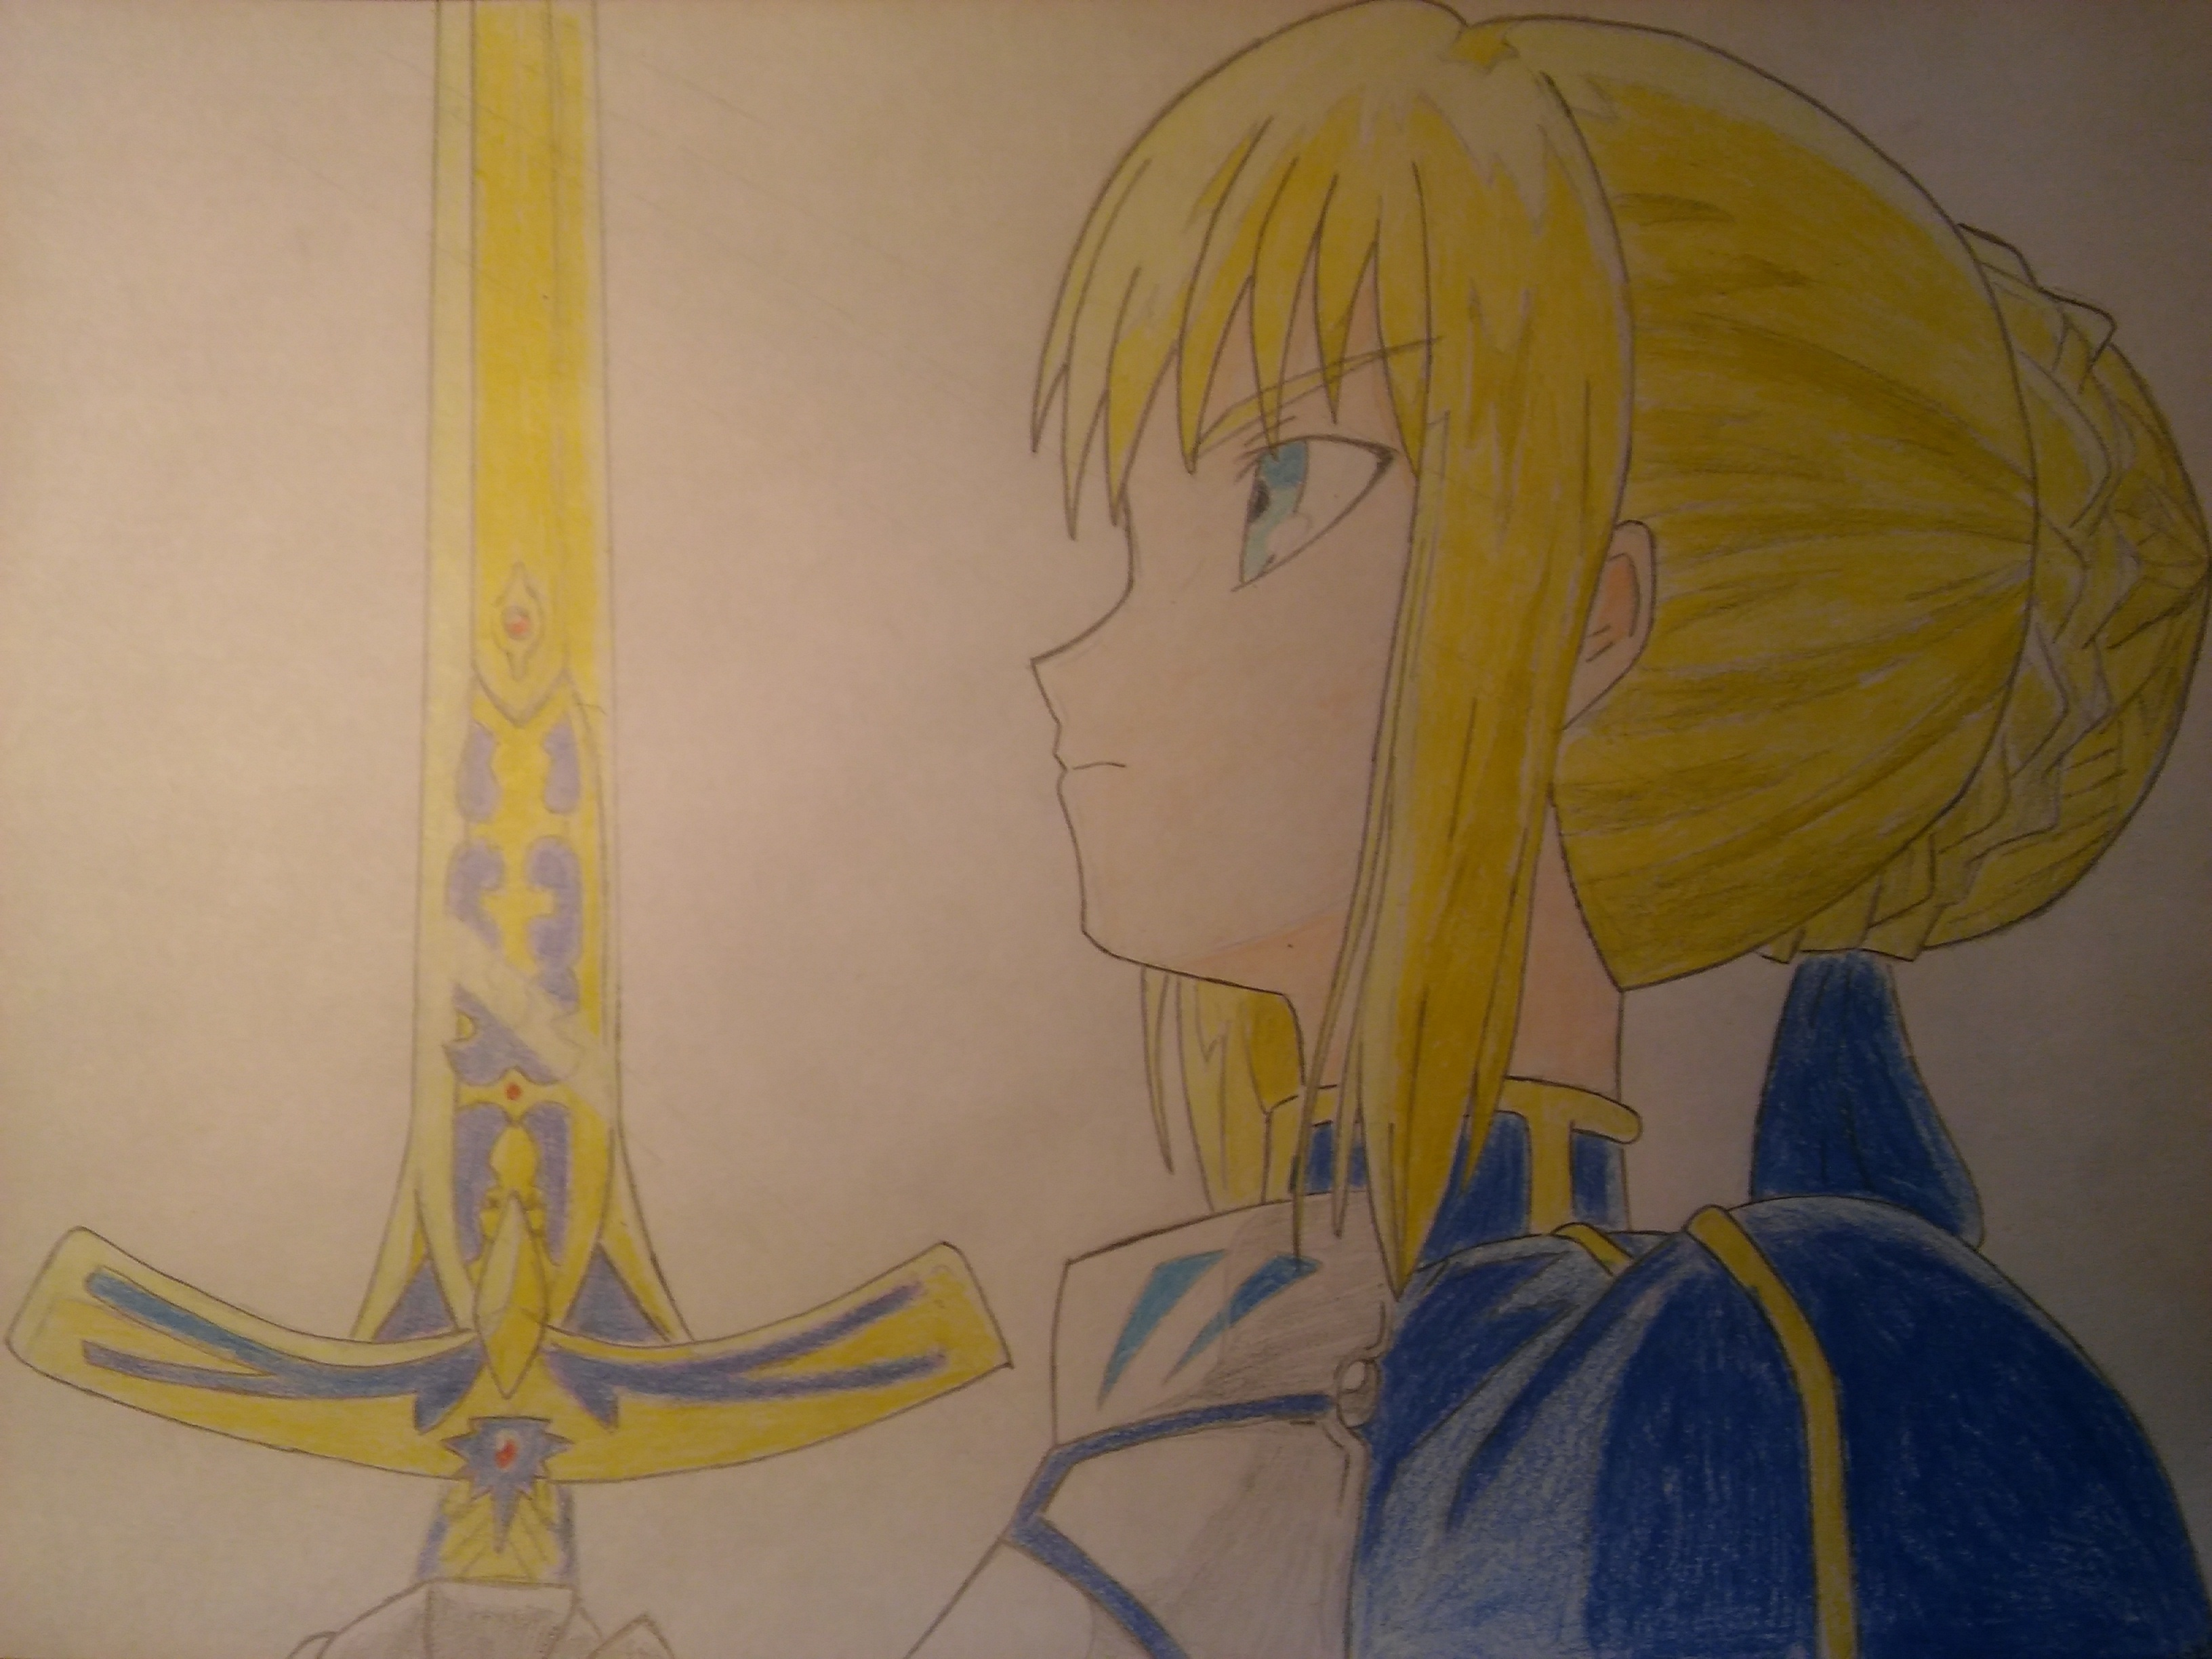 Saber Fate/Stay Nigth